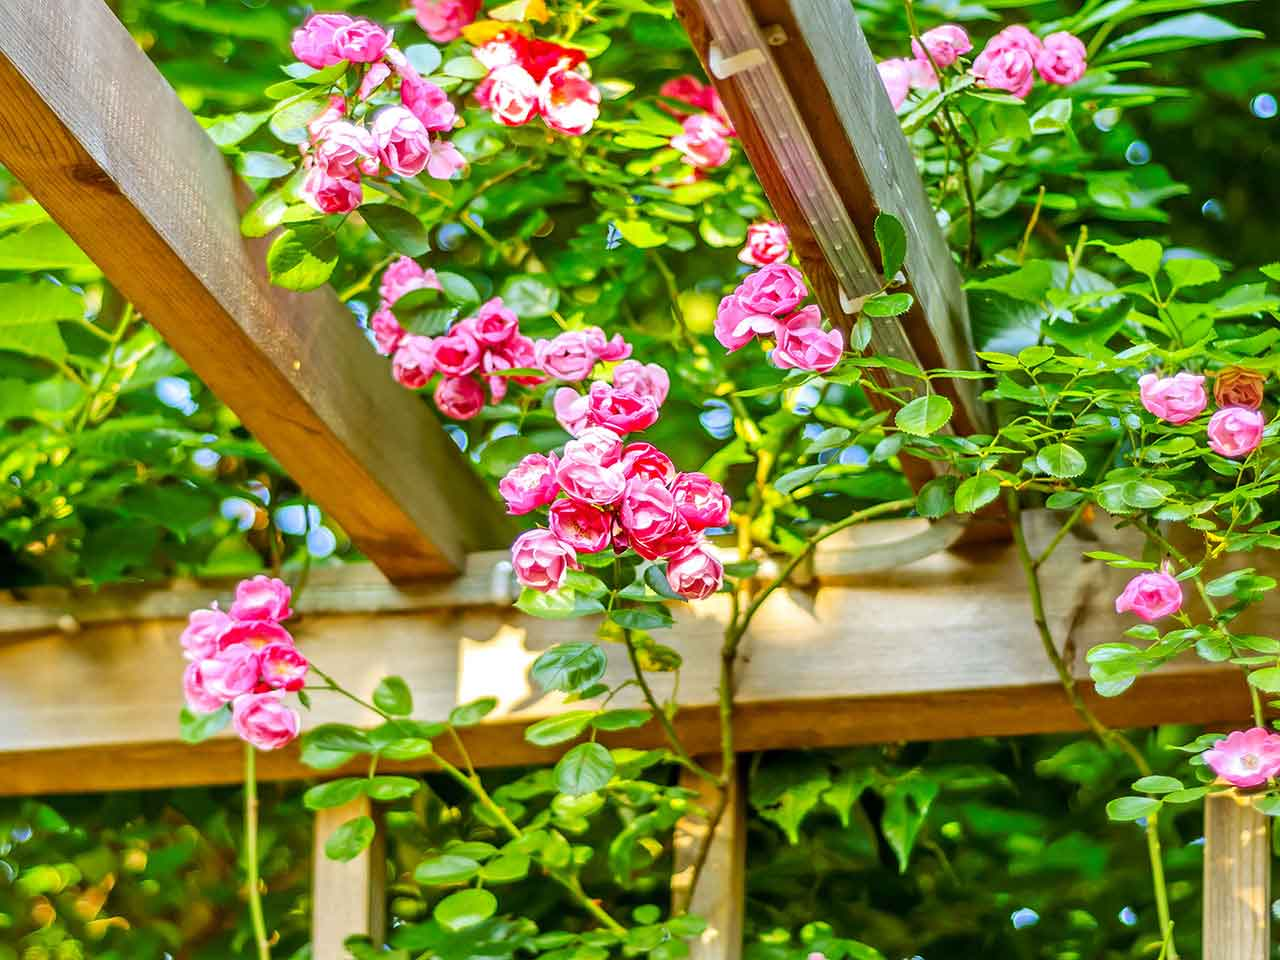 Rambling roses growing over a wooden frame